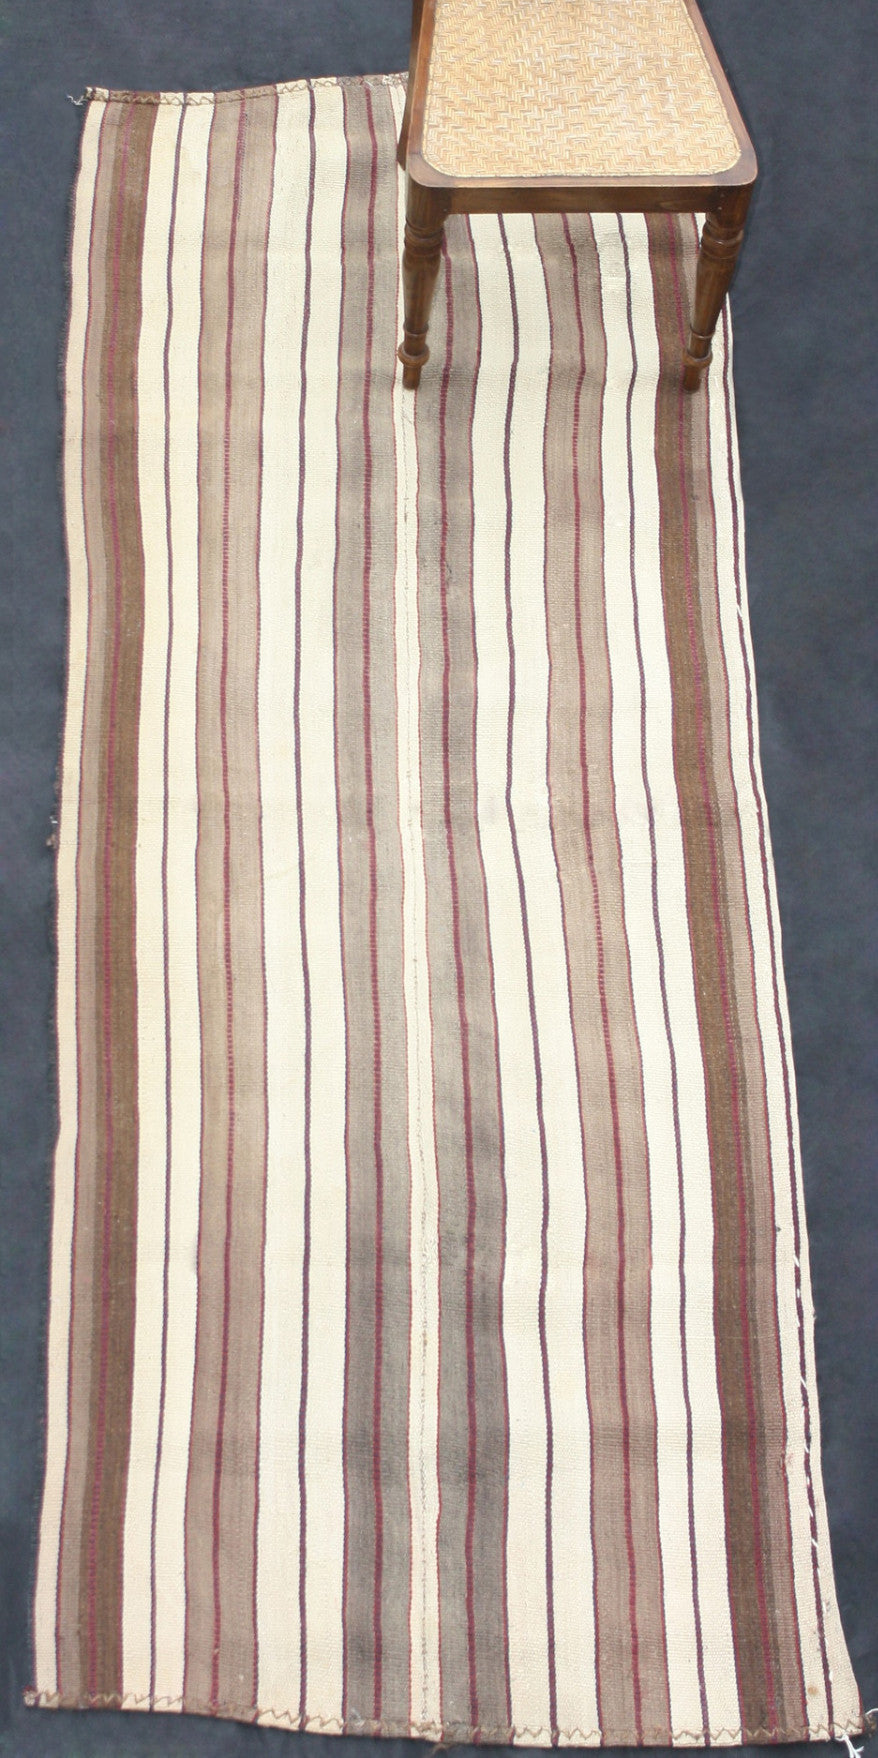 "Acik Heybe In Brown And Cream With Grey Stripes (3' 1"" x 8' 6"")"